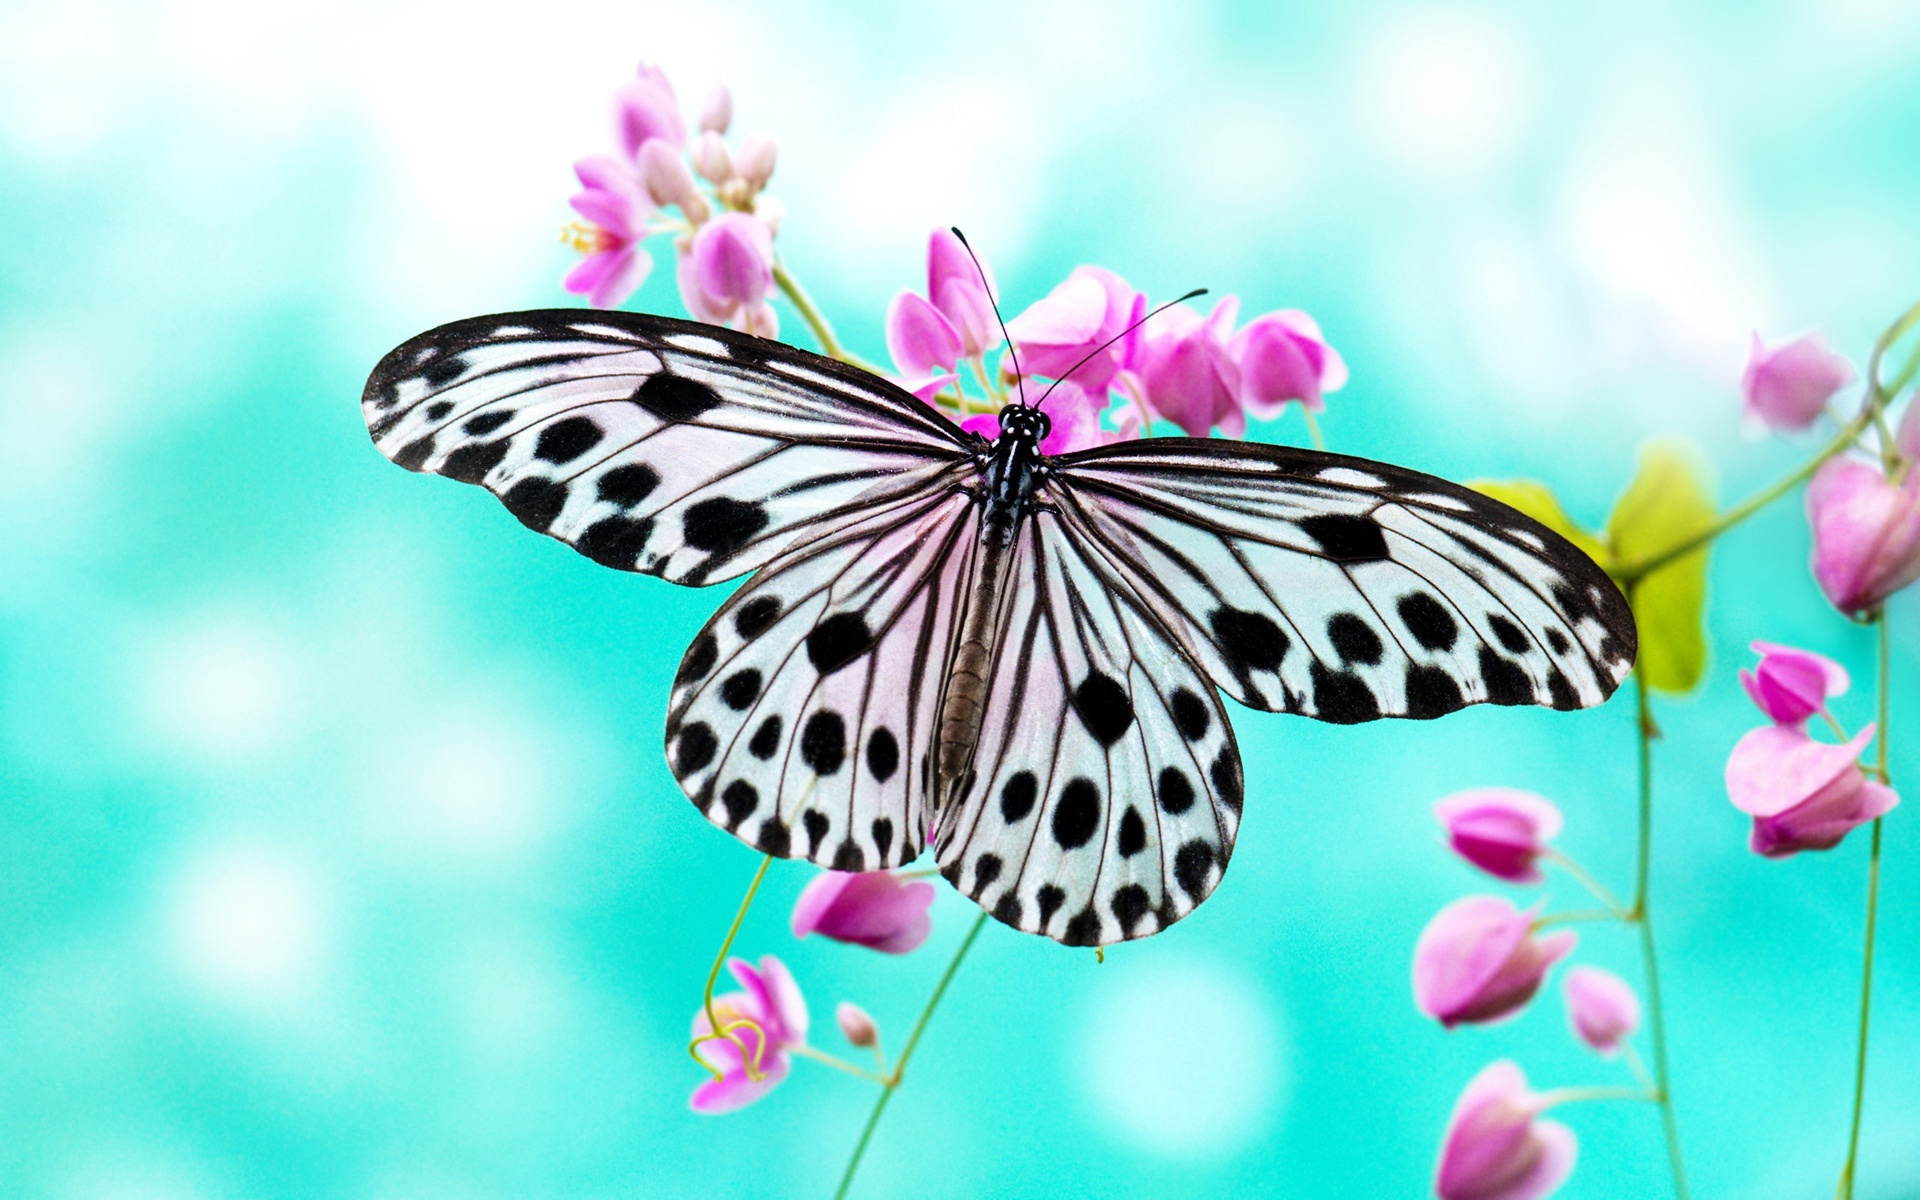 Wallpaper Butterfly Love Purple Flowers 1920x1200 Hd Picture